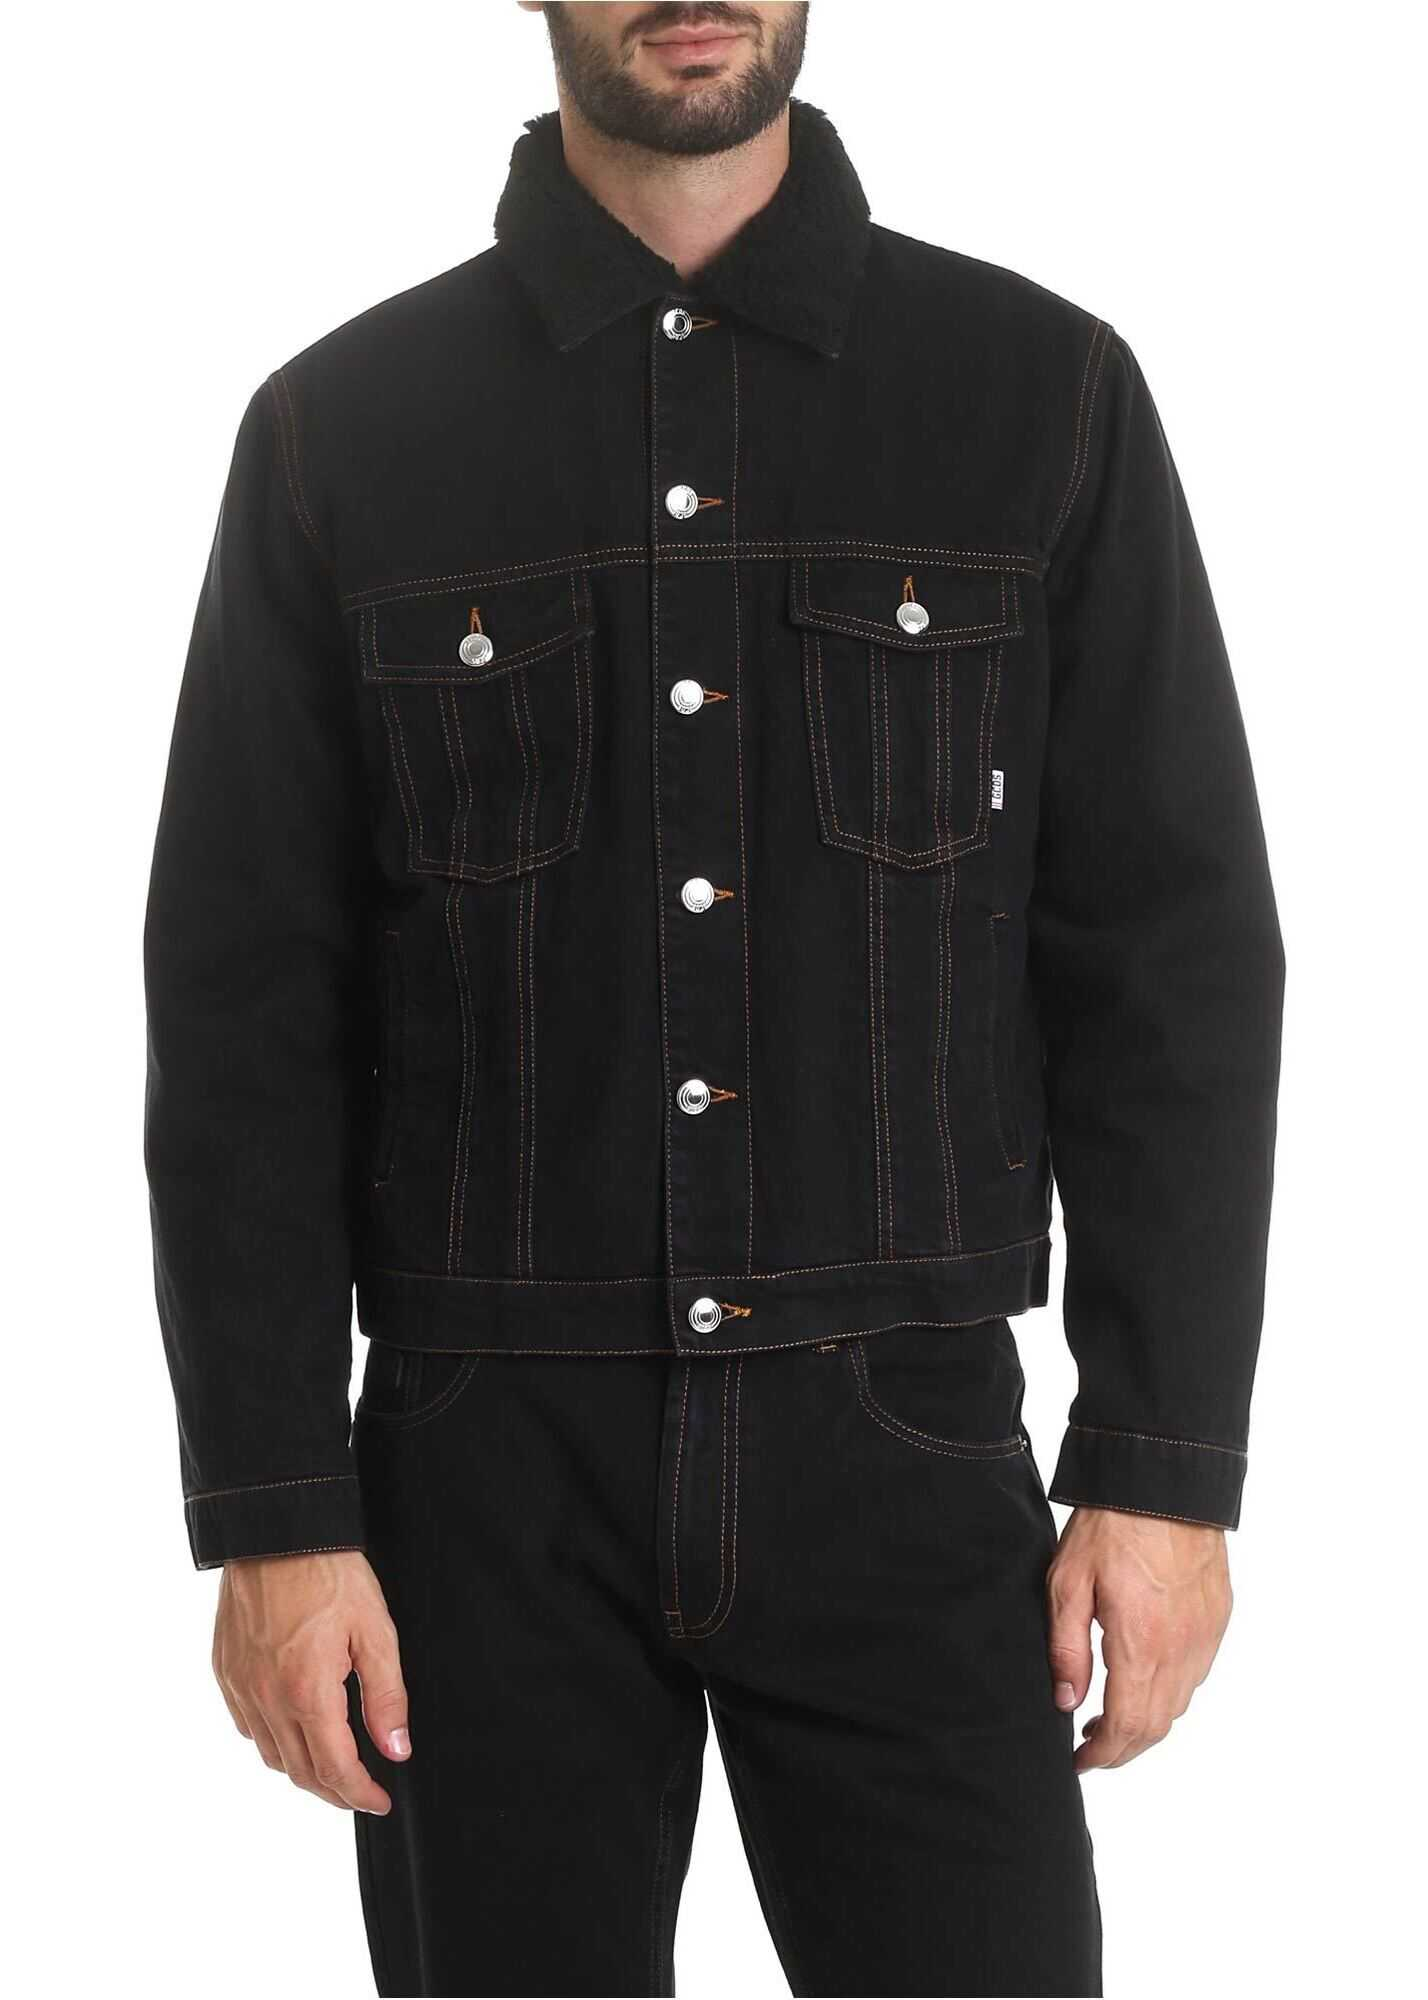 GCDS Black Denim Jacket With Fleece Lining Black imagine